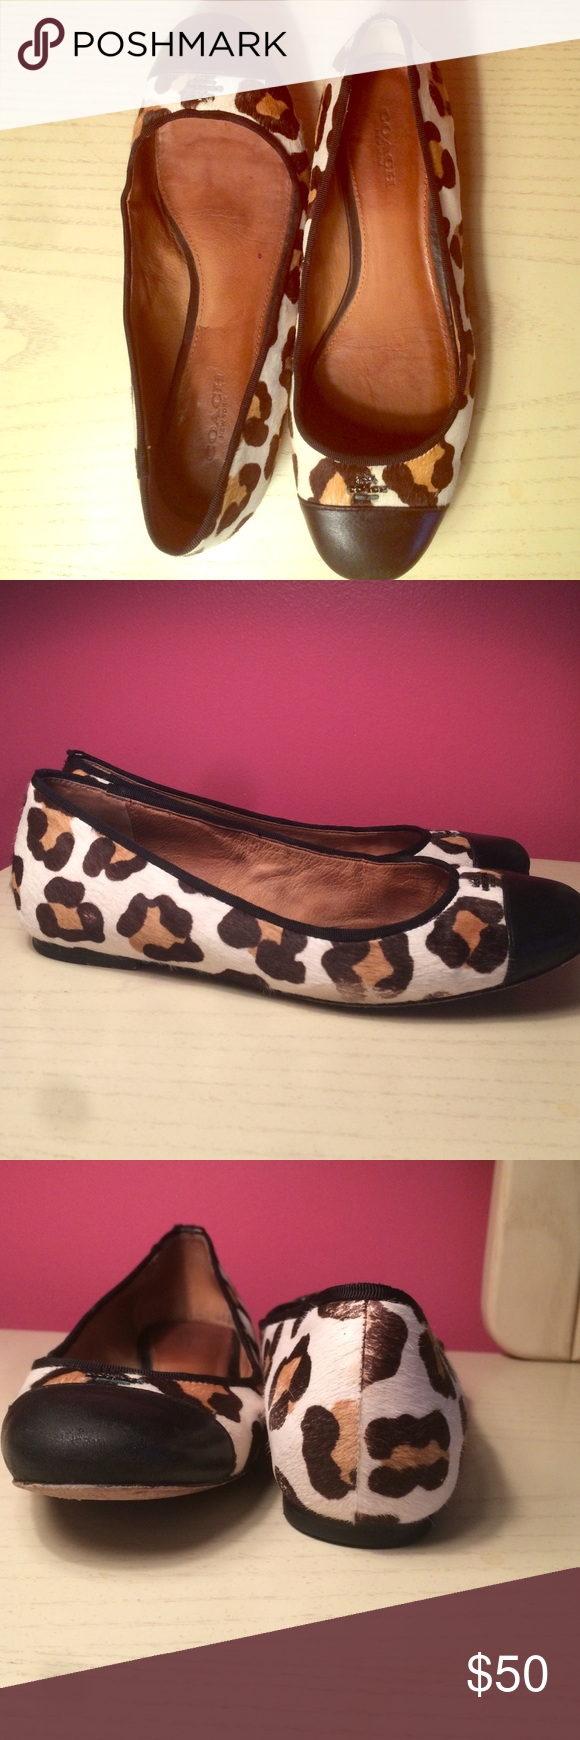 Coach flats- Samantha in wild beast print Haircalf shoe with a smooth leather toe. Slightly worn but I'm great condition. Background is an off white with light and dark brown spots. Says Coach near the toe on both feet Coach Shoes Flats & Loafers